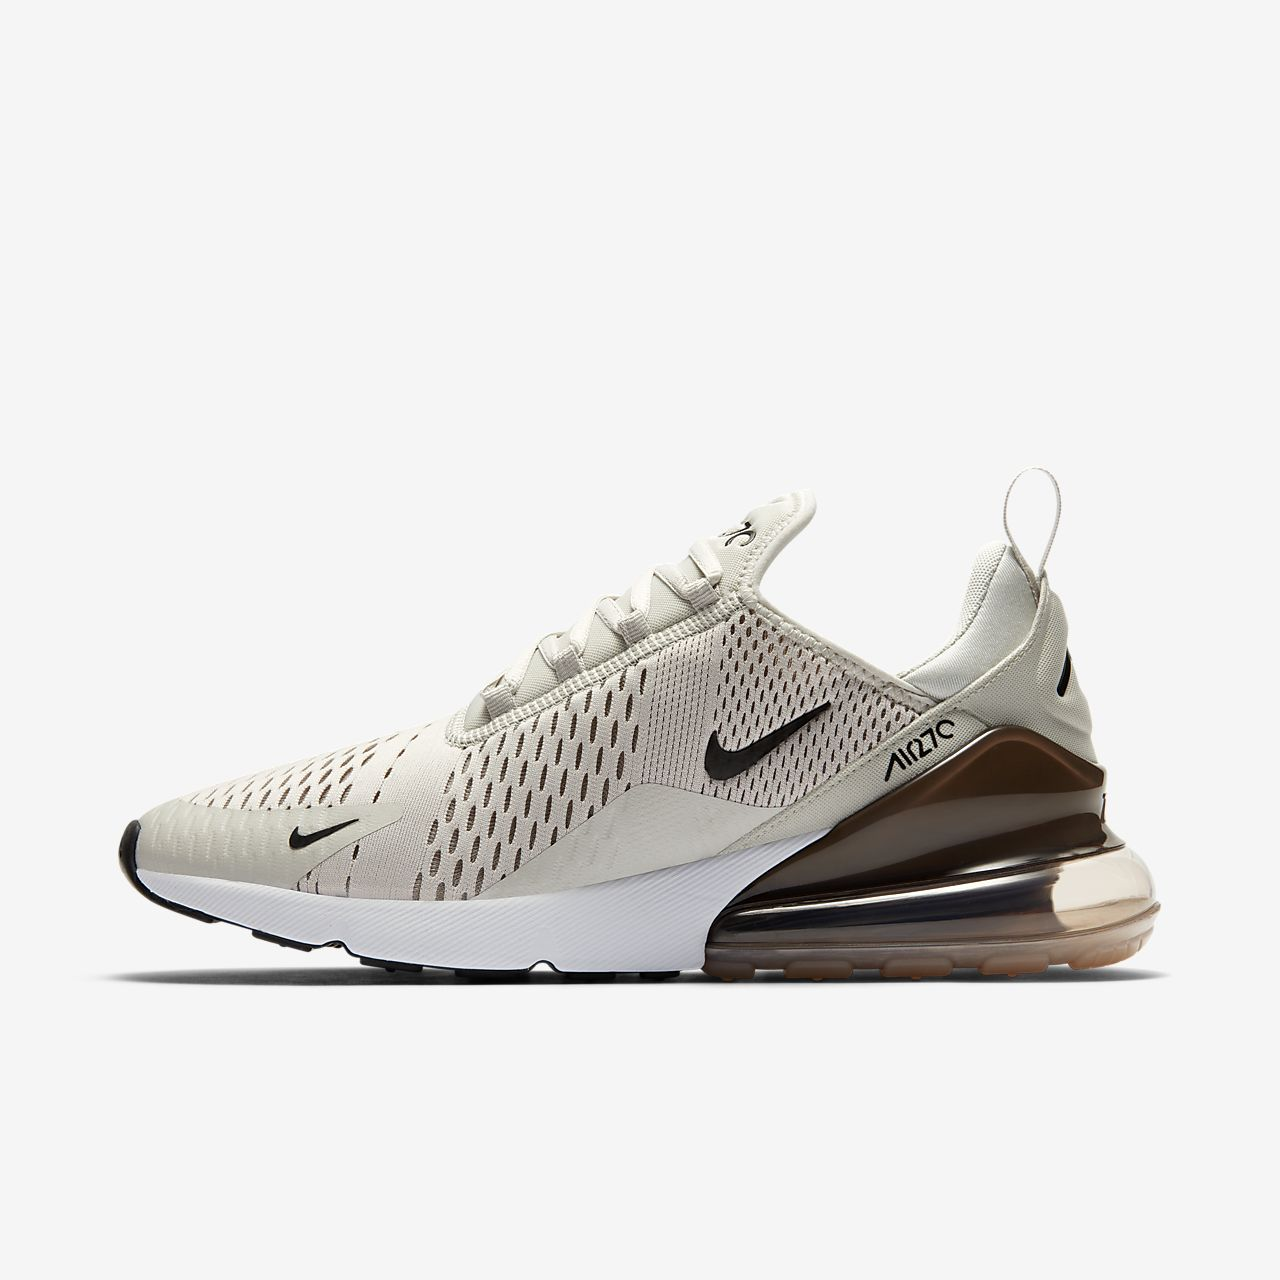 Gris Nike Air Max 270 Chaussures Taille 35 Hommes 2CyGDWP